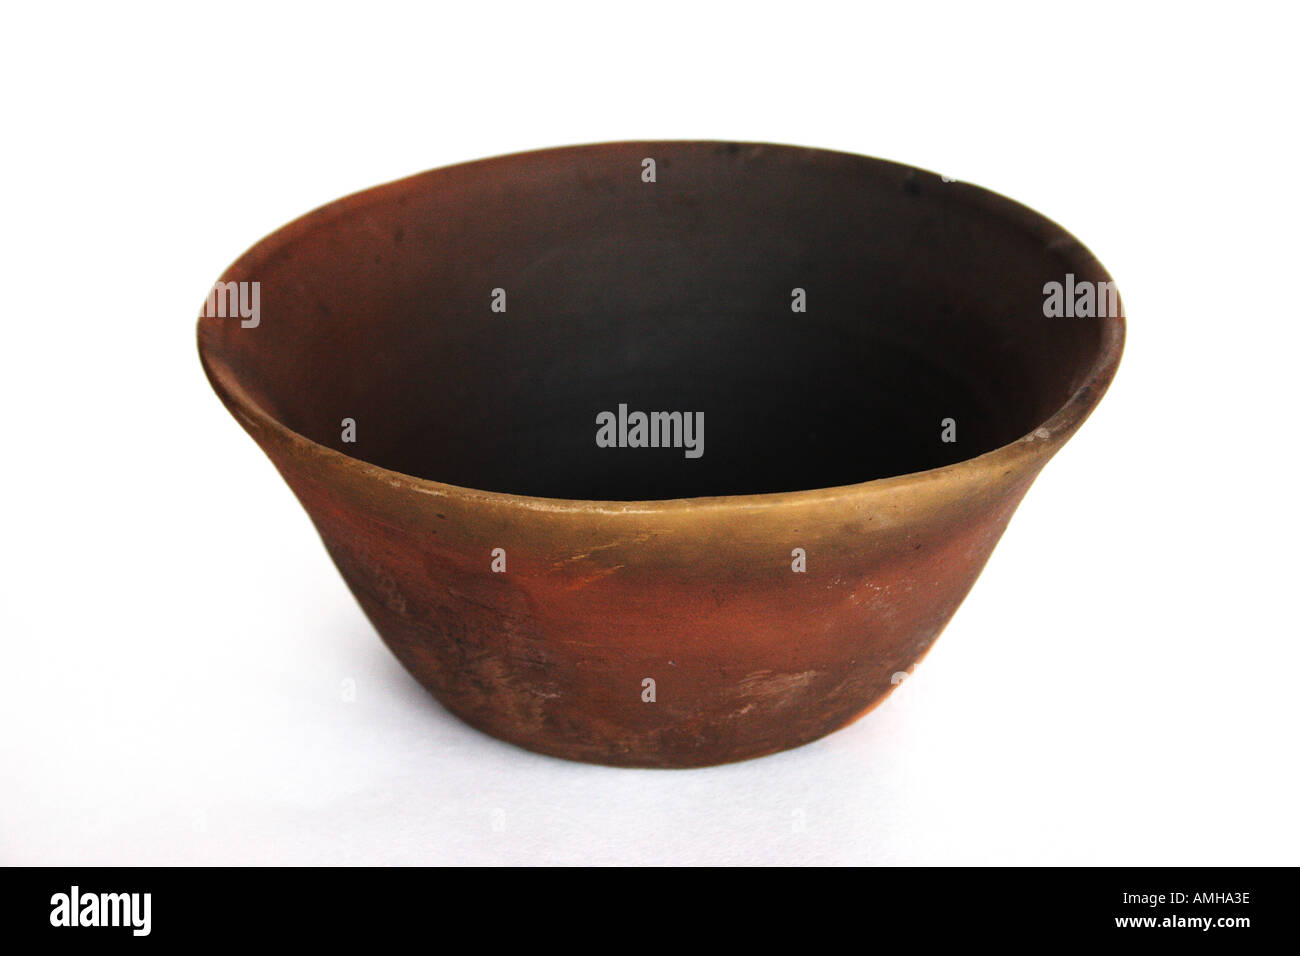 Terracotta bowl with a white background - Stock Image